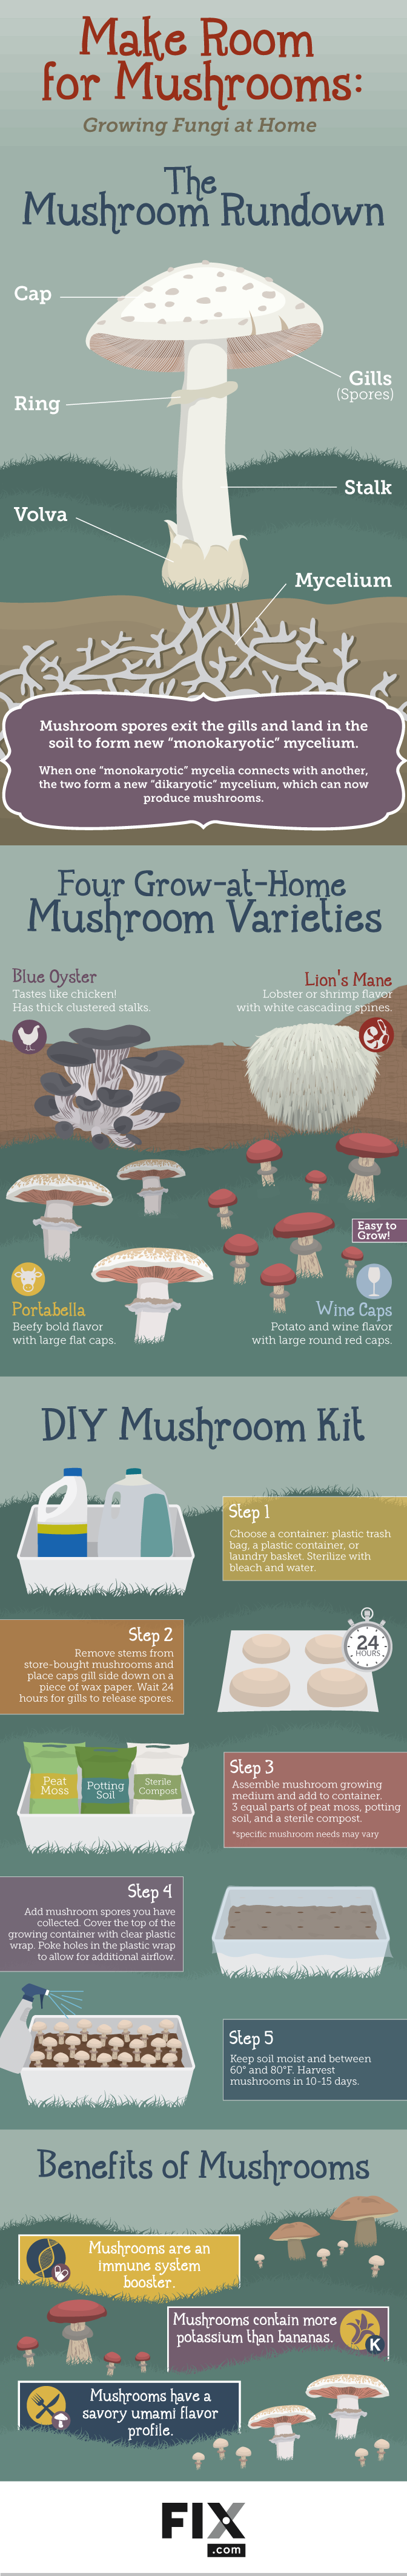 Easy Guide To Growing Mushrooms At Home